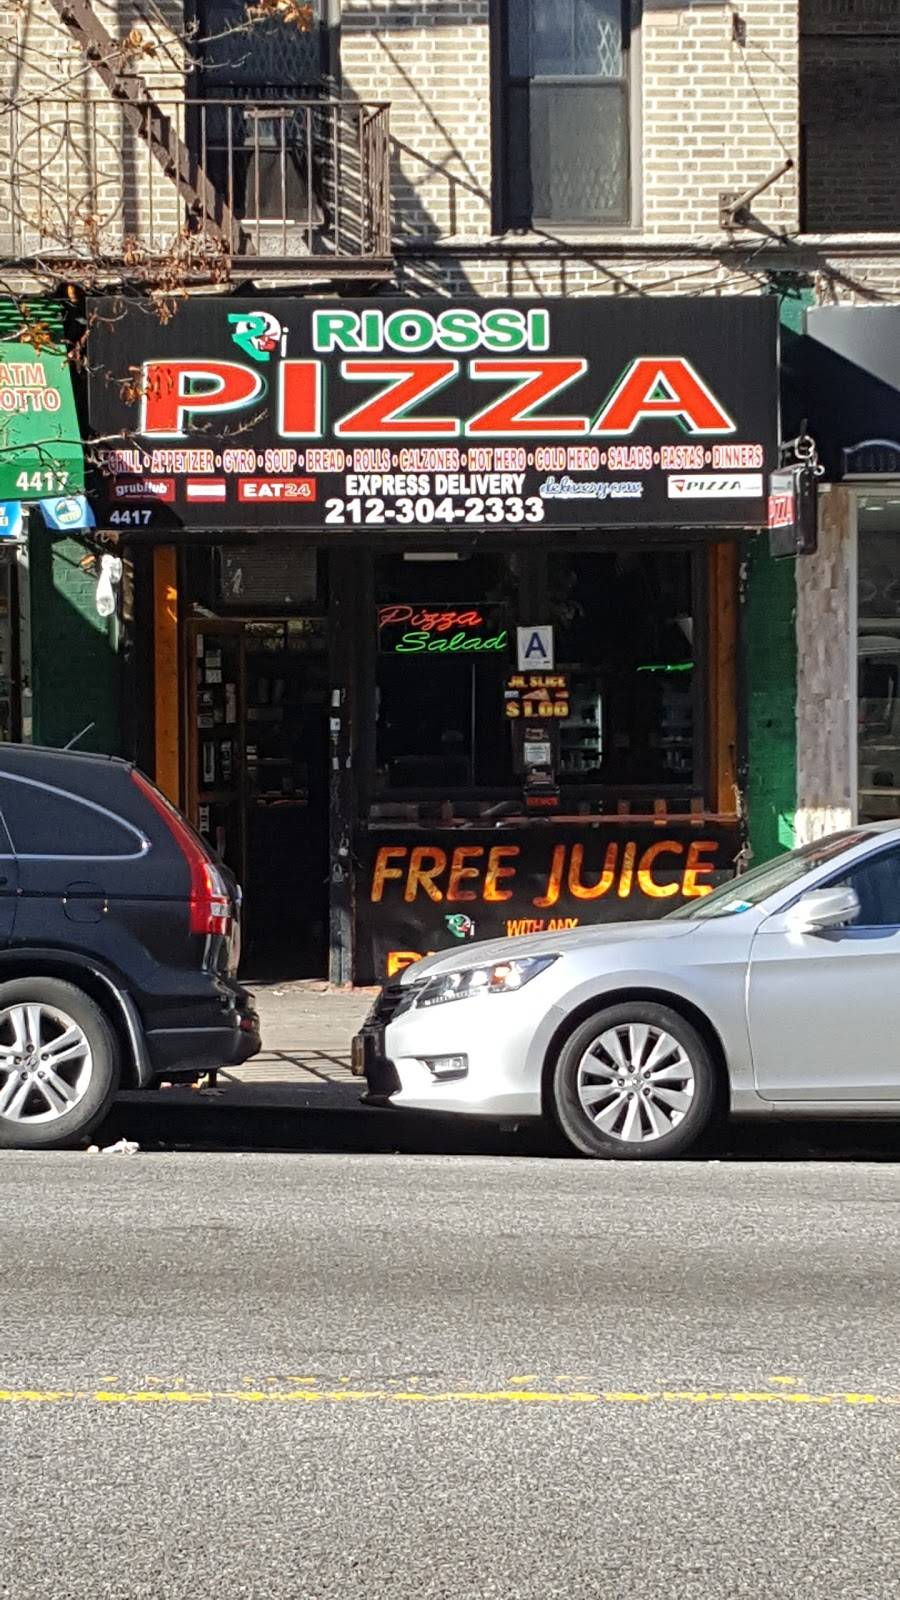 Riossi Pizza | meal delivery | 4417 Broadway, New York, NY 10040, USA | 2123042333 OR +1 212-304-2333